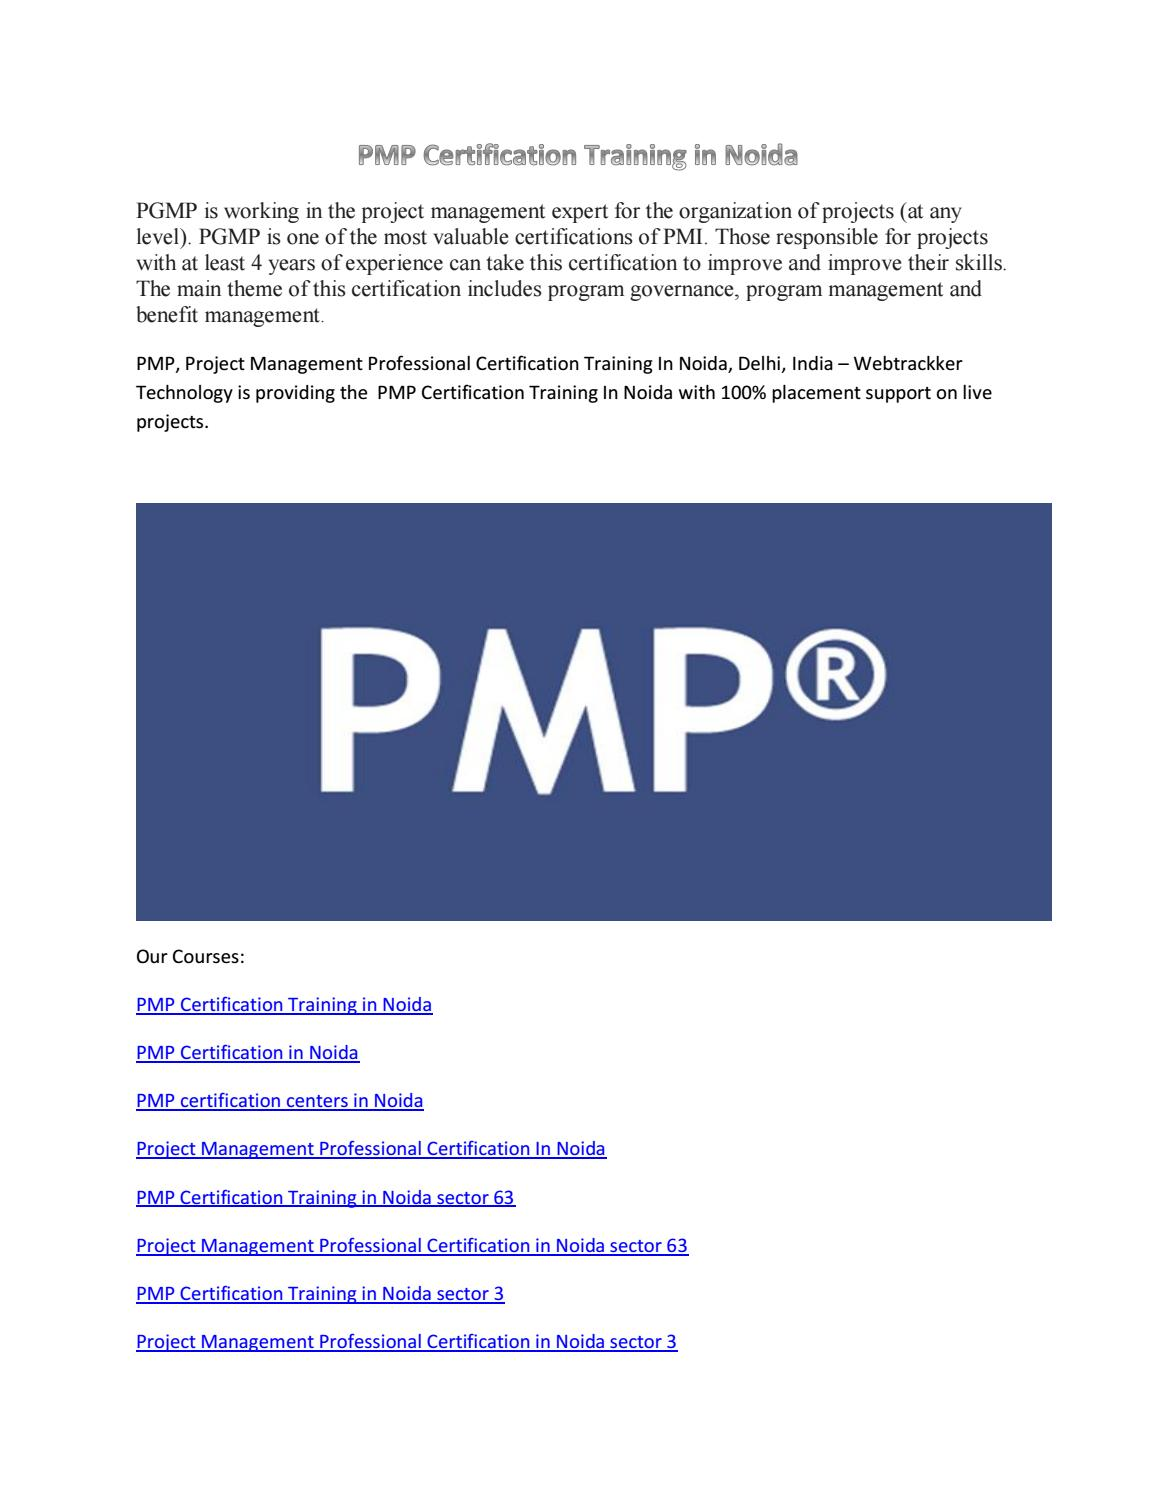 Pmp Certification Training In Noida By Webtrackkerashish Issuu